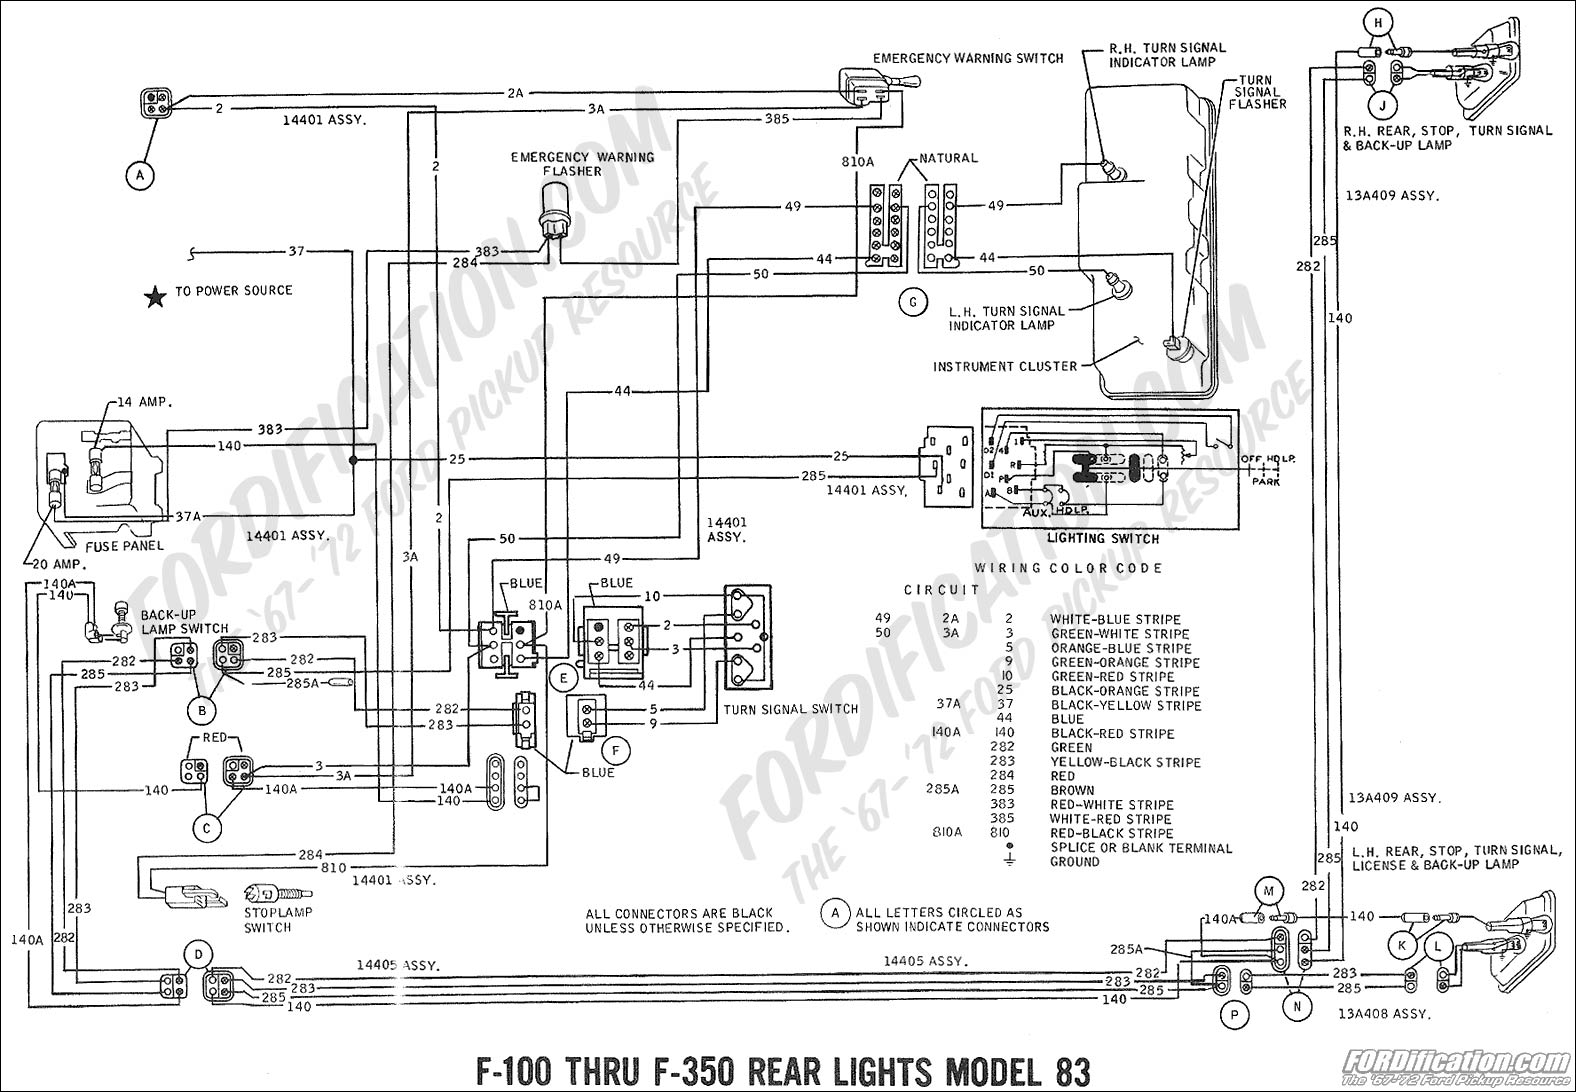 1968 Ford F 250 Turn Signal Wiring Diagram Wiring Diagram Report A Report A Maceratadoc It